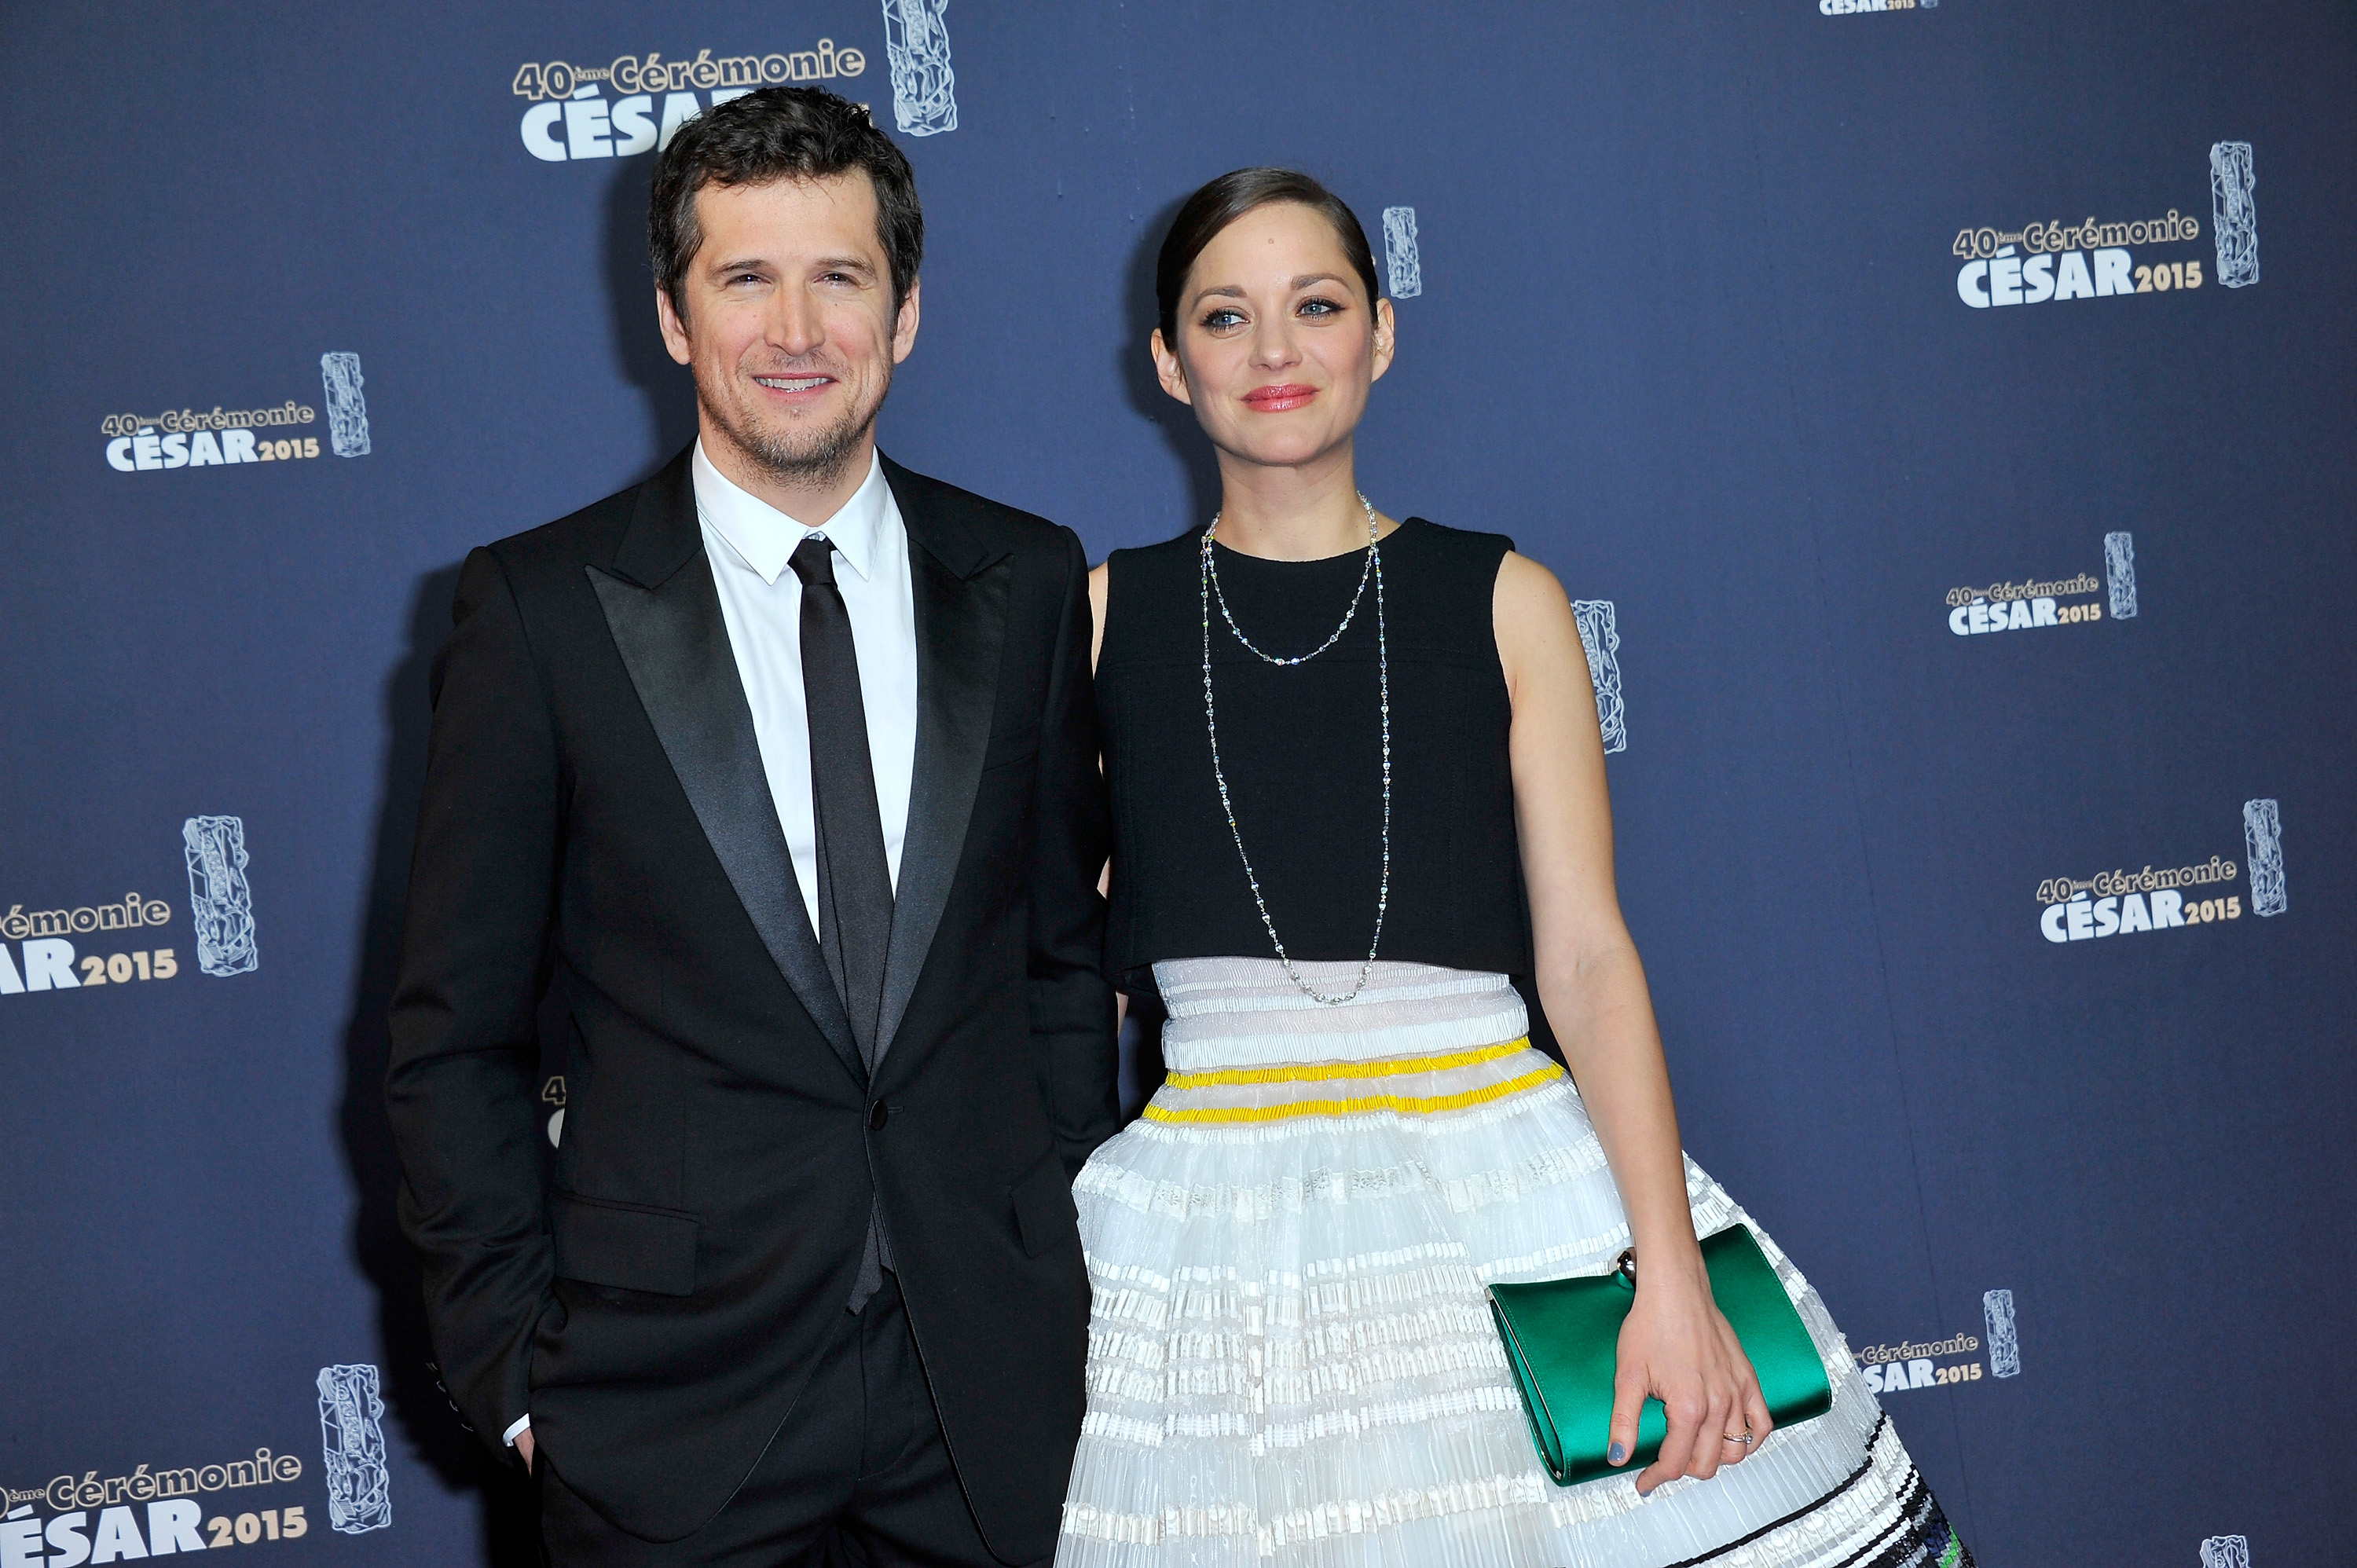 PARIS, FRANCE - Guillaume Canet and Marion Cotillard attend the 40th Cesar Film Awards at Theatre du Chatelet on February 20, 2015 in Paris, France.